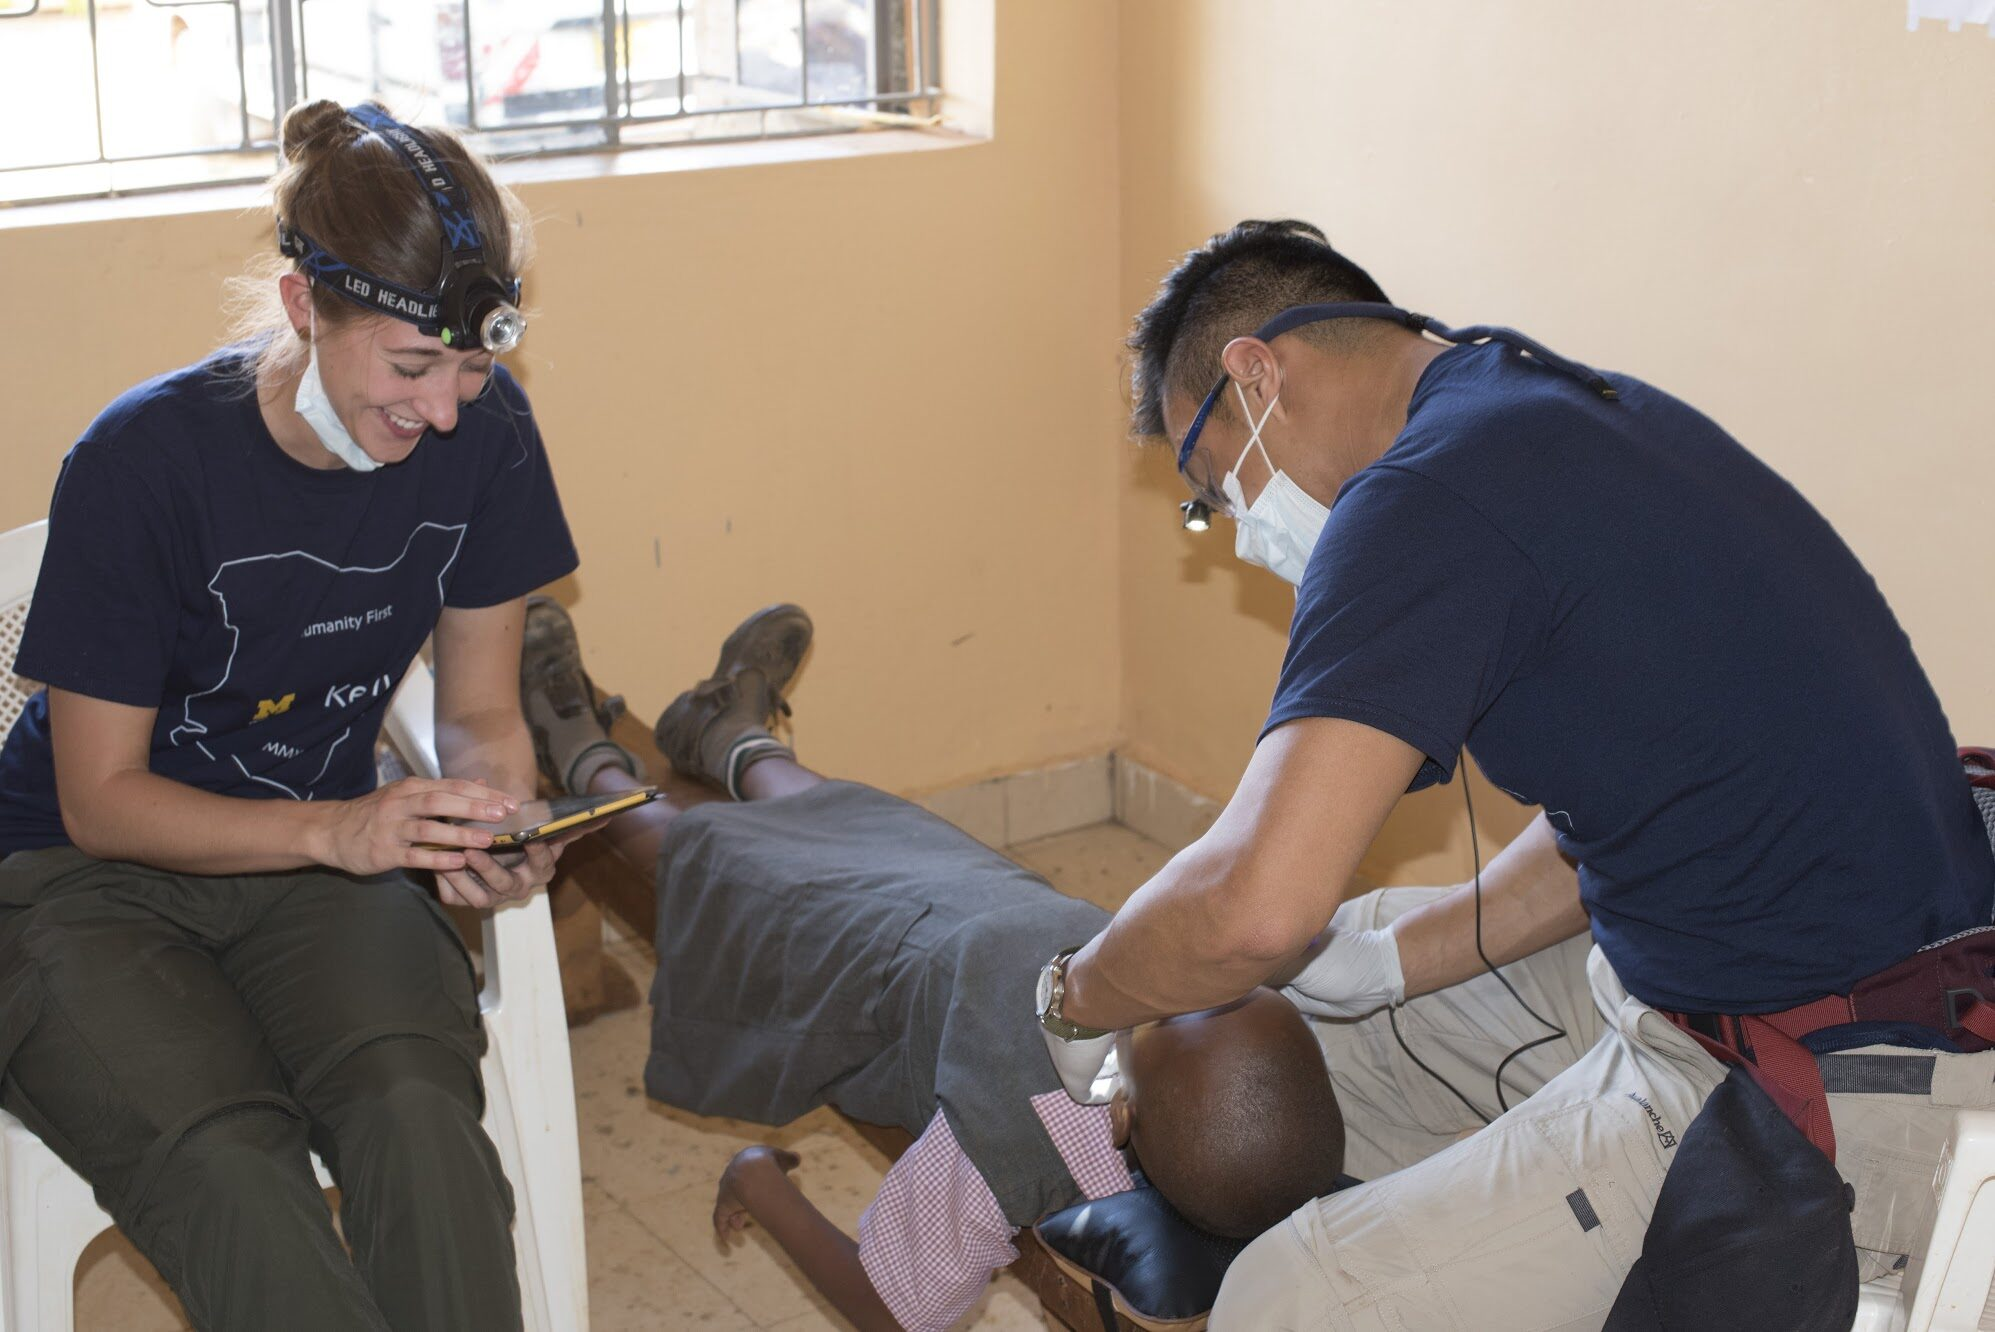 Students from the School of Dentistry taught kids basic oral hygiene and performed preventive dental treatments, like cleaning, sealing and applying fluoride. Image credit: Global Initiatives in Oral and Craniofacial Health